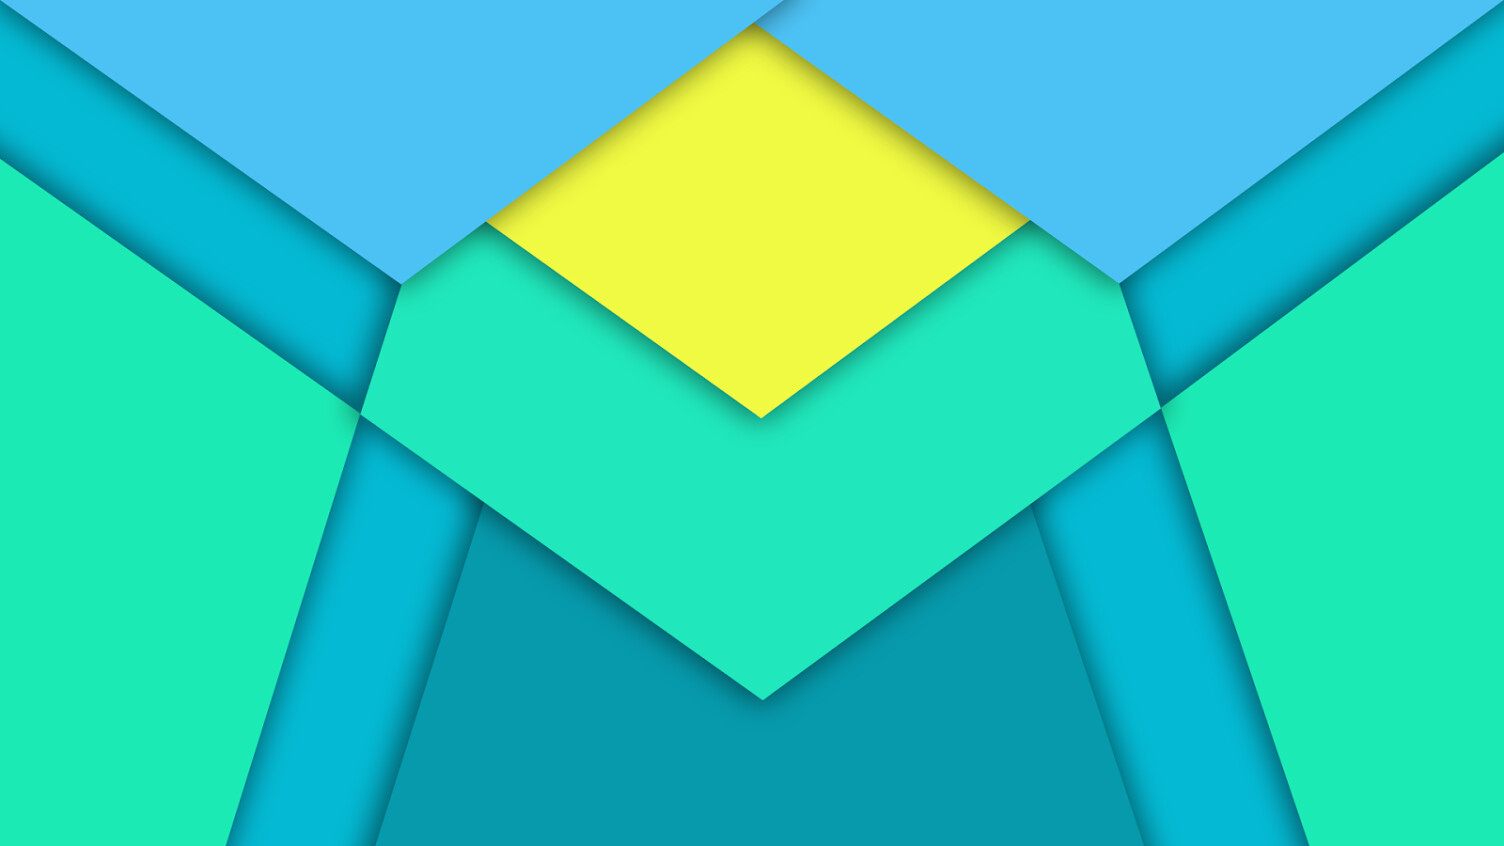 Android 5.0 Lollipop Material Design Wallpaper Collection